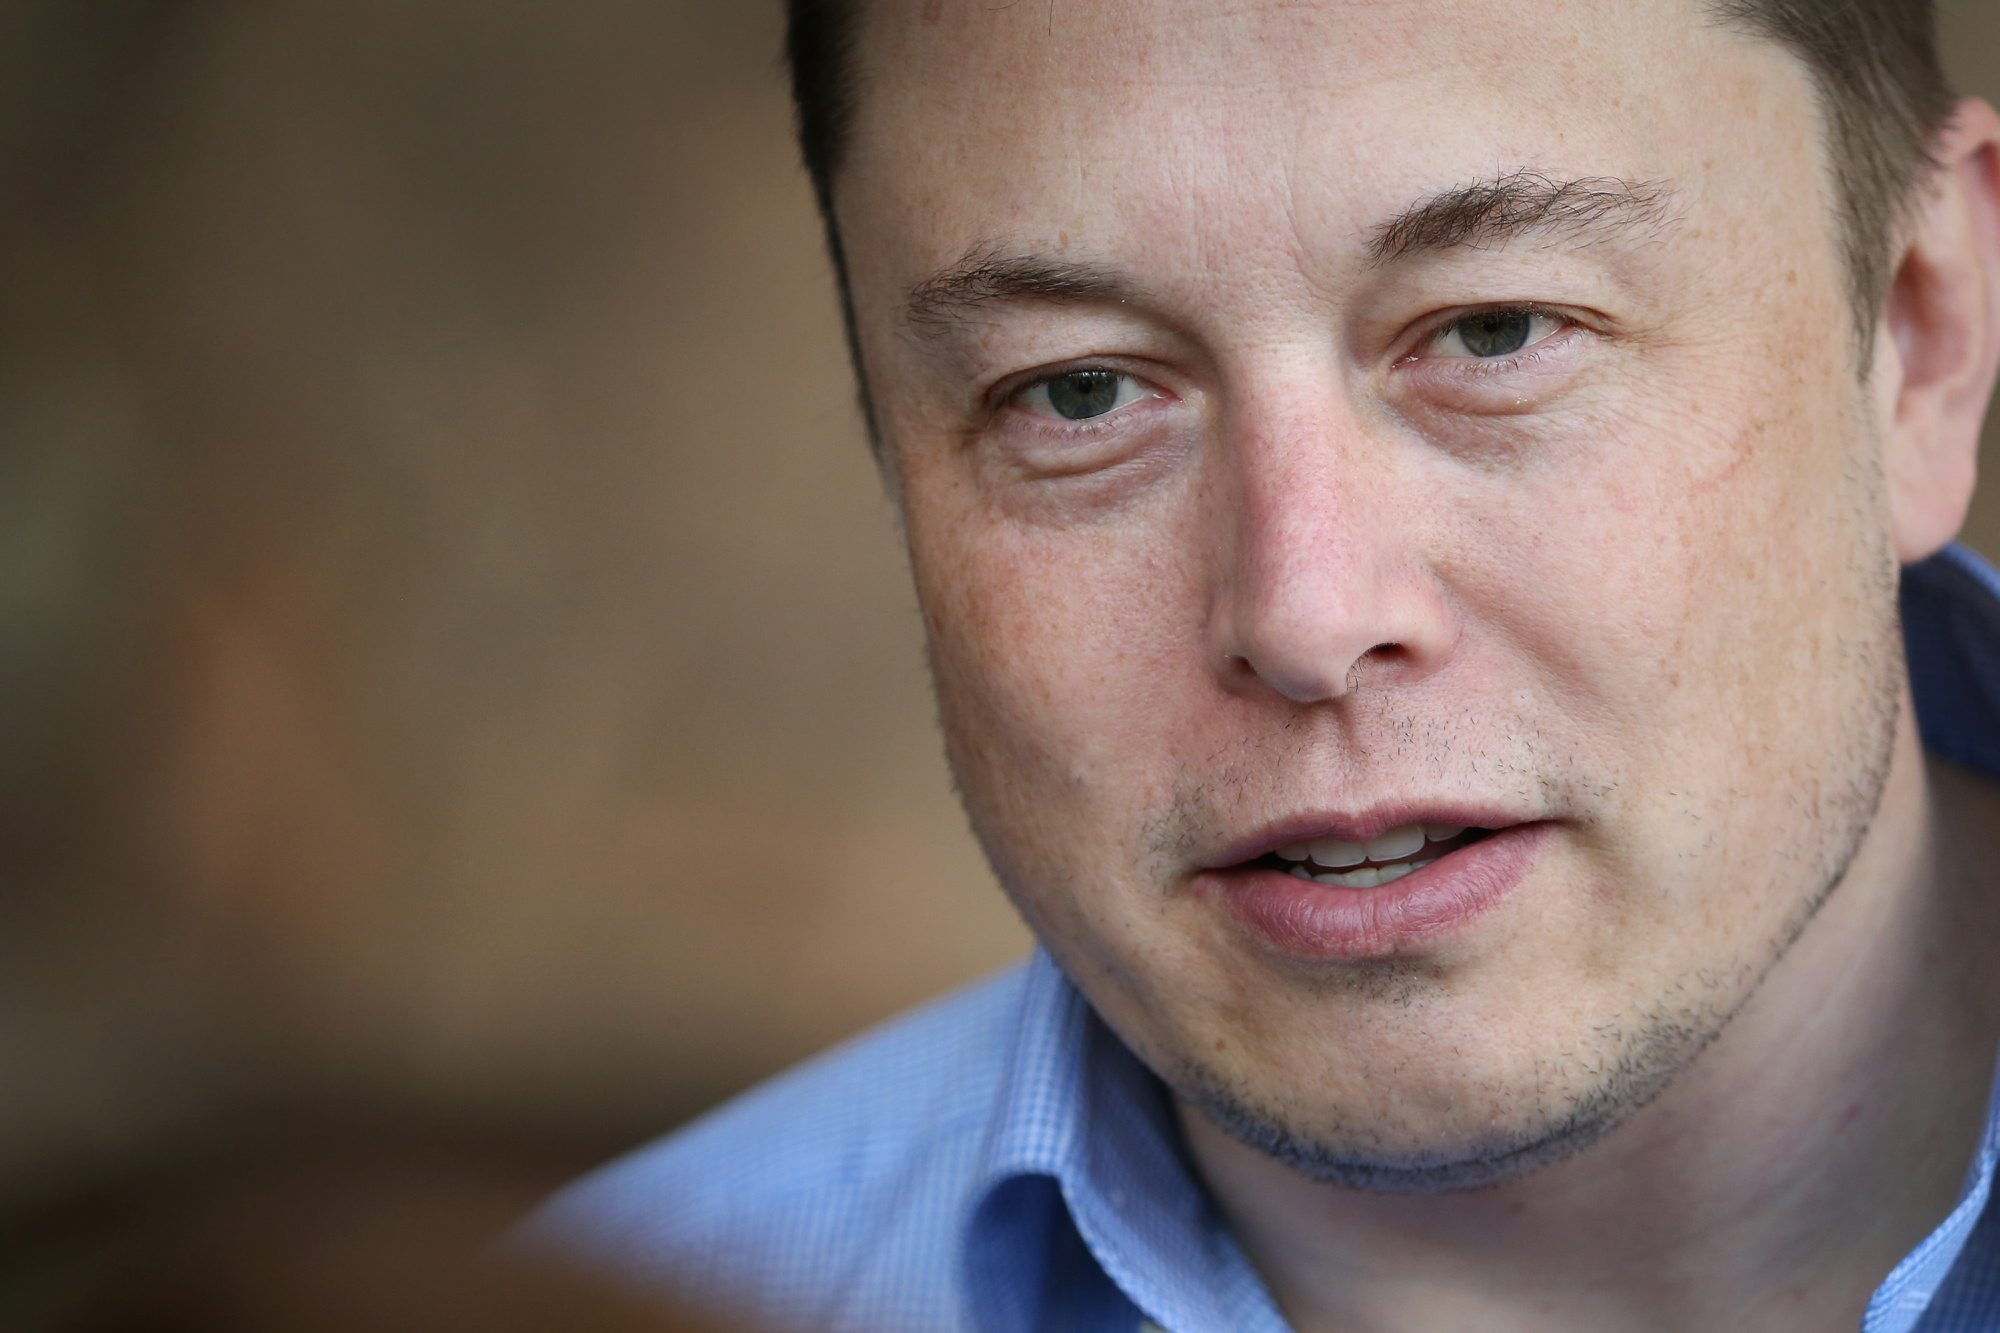 """There may be some merit to bringing in a strategic partner, as Tesla has with the battery cell manufac- turing,"" says Elon Musk, SolarCity chairman and Tesla CEO."